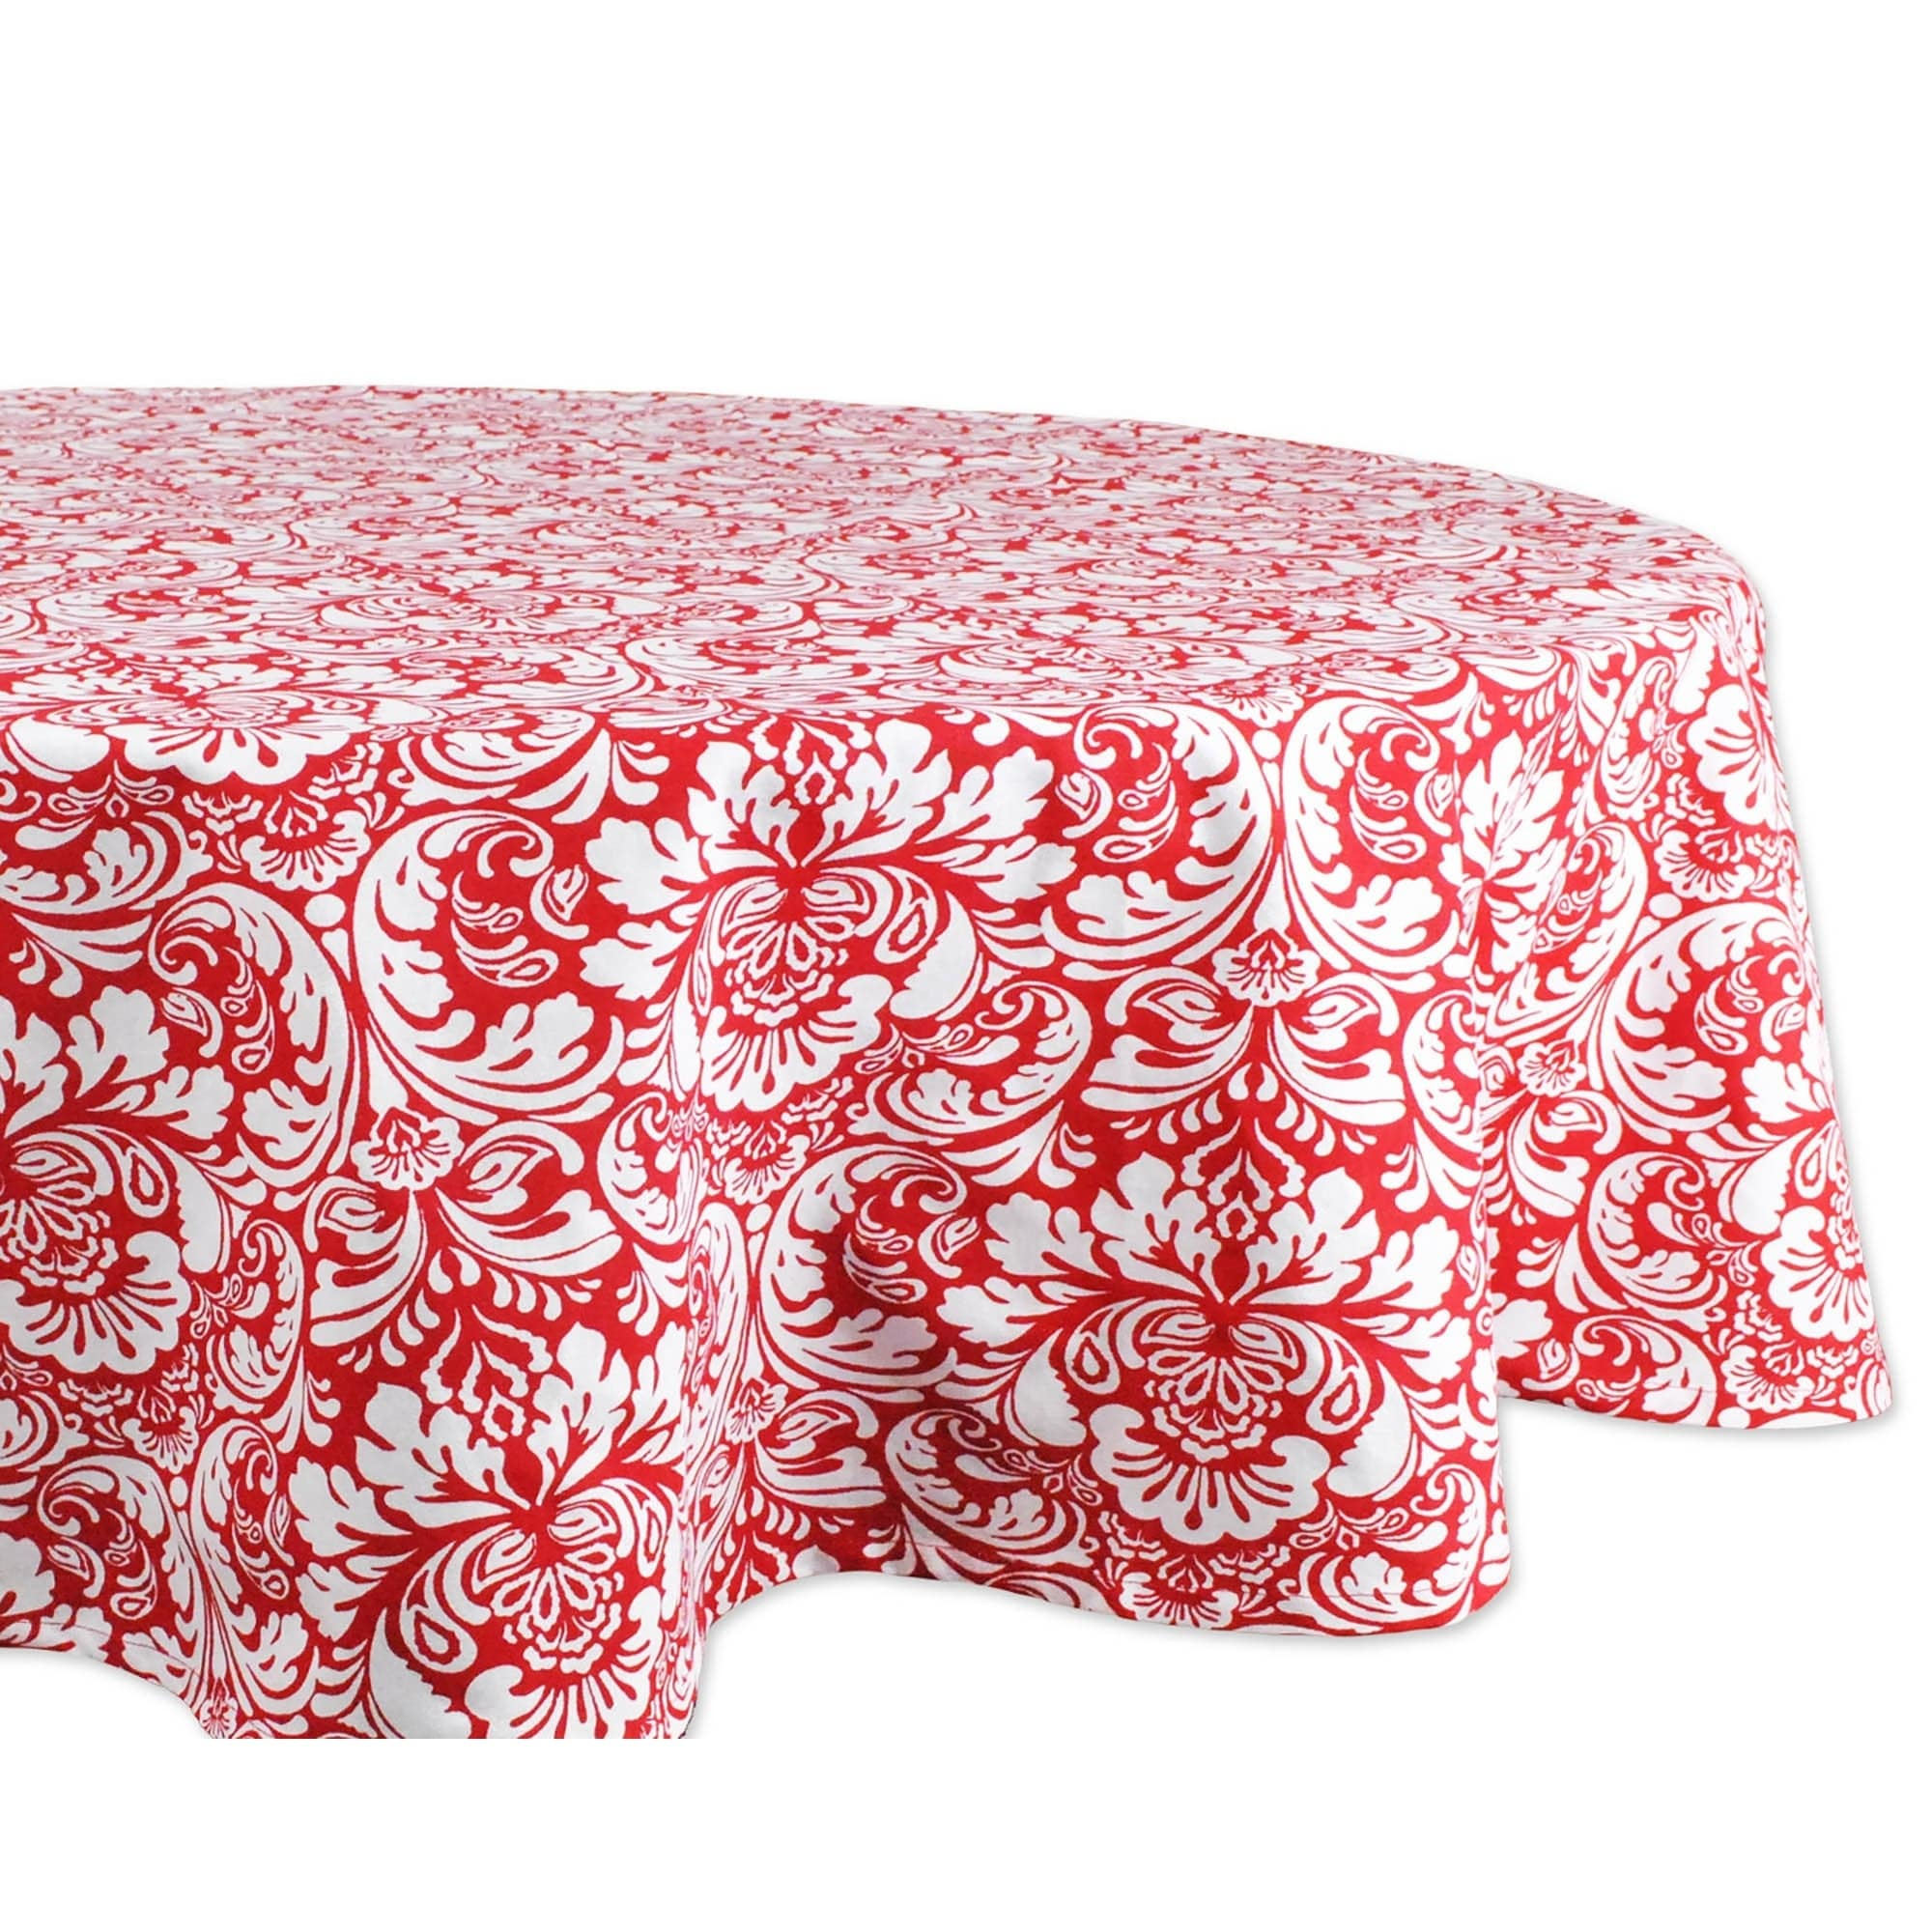 Christmas Ribbons Damask Tablecloth in White Choice of Size